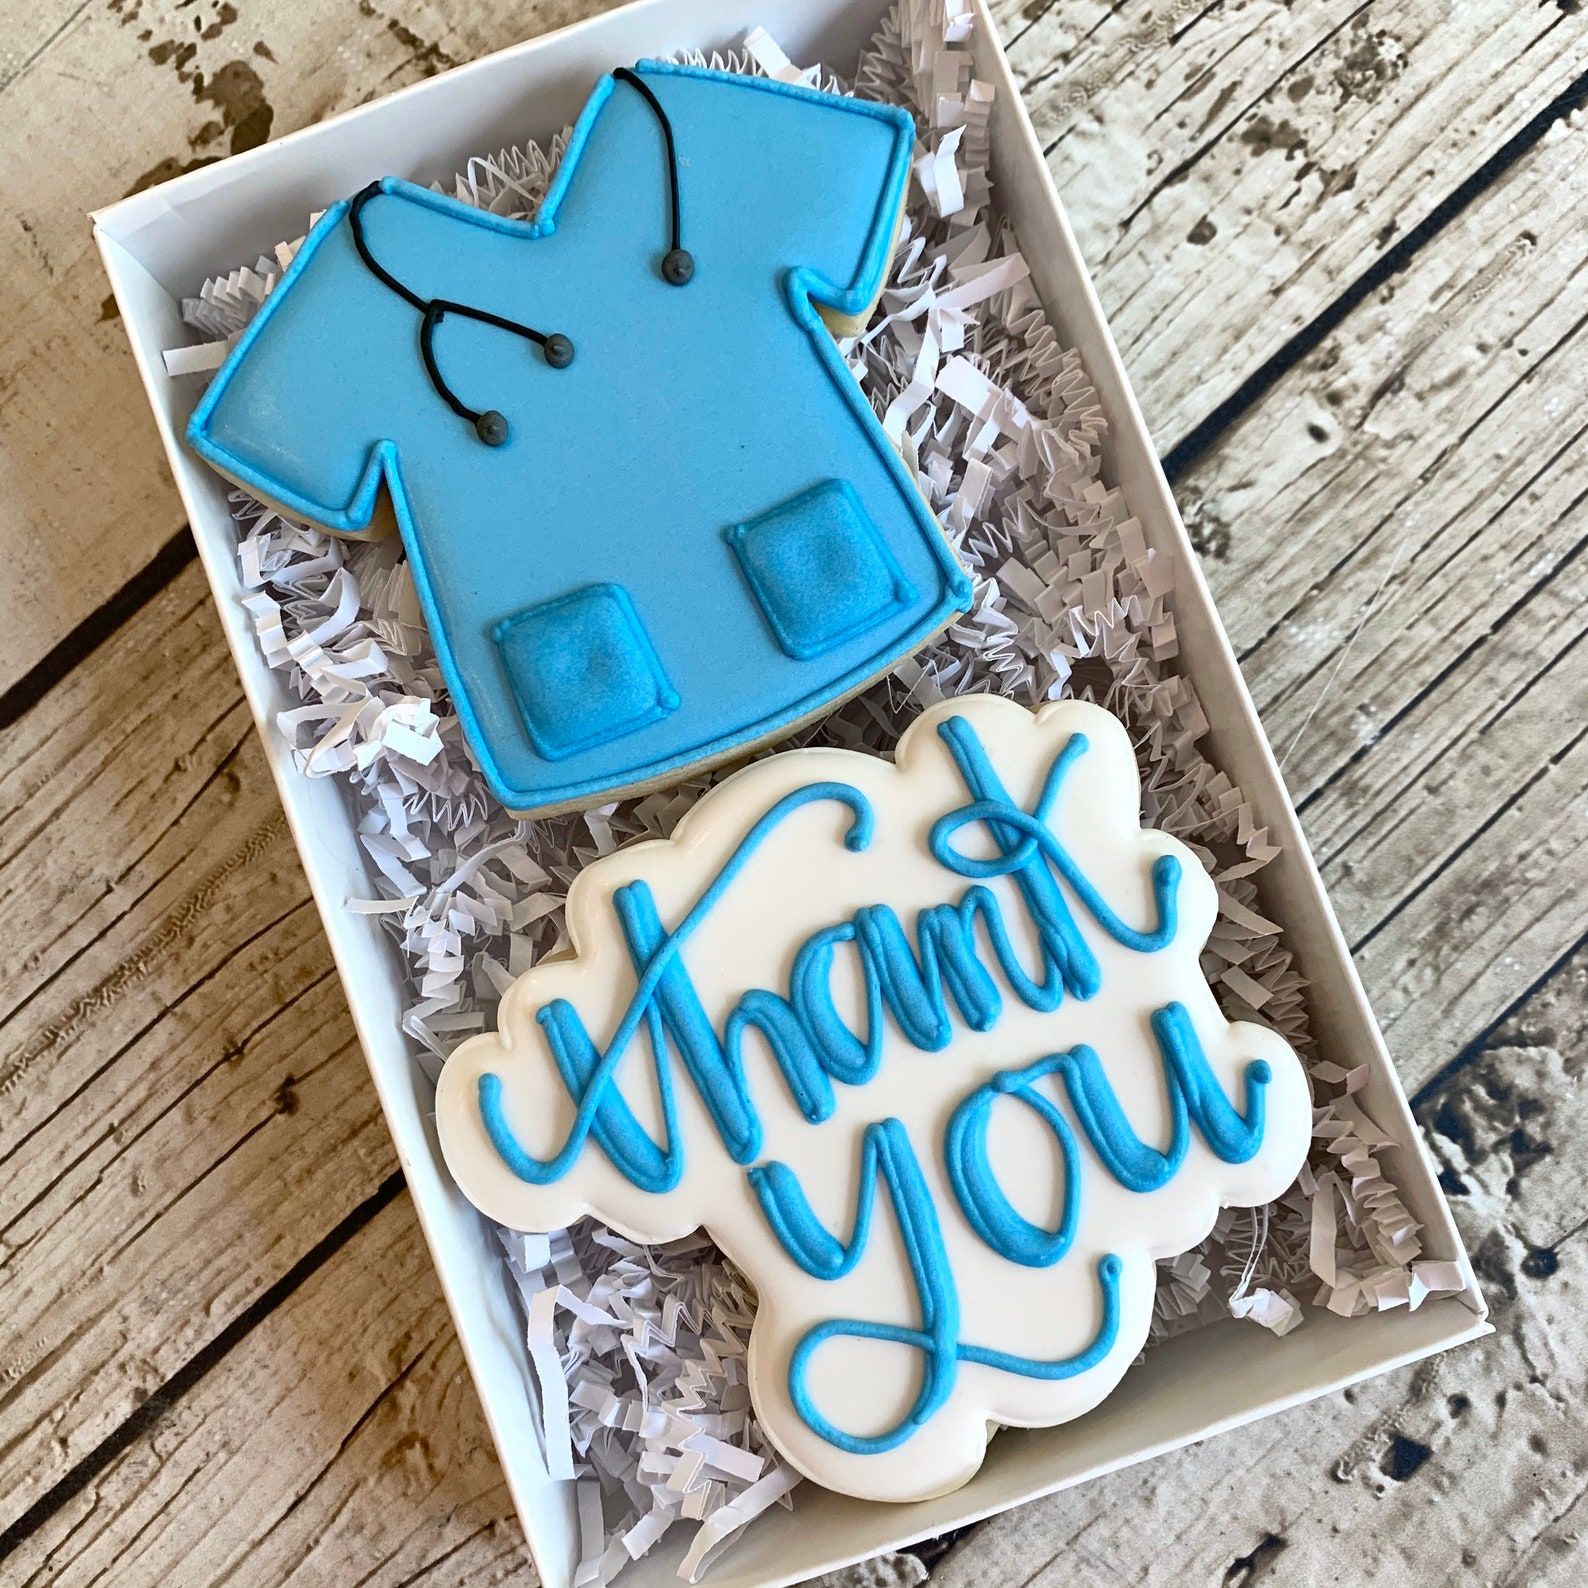 Healthcare Medical Workers Thank You Cookies